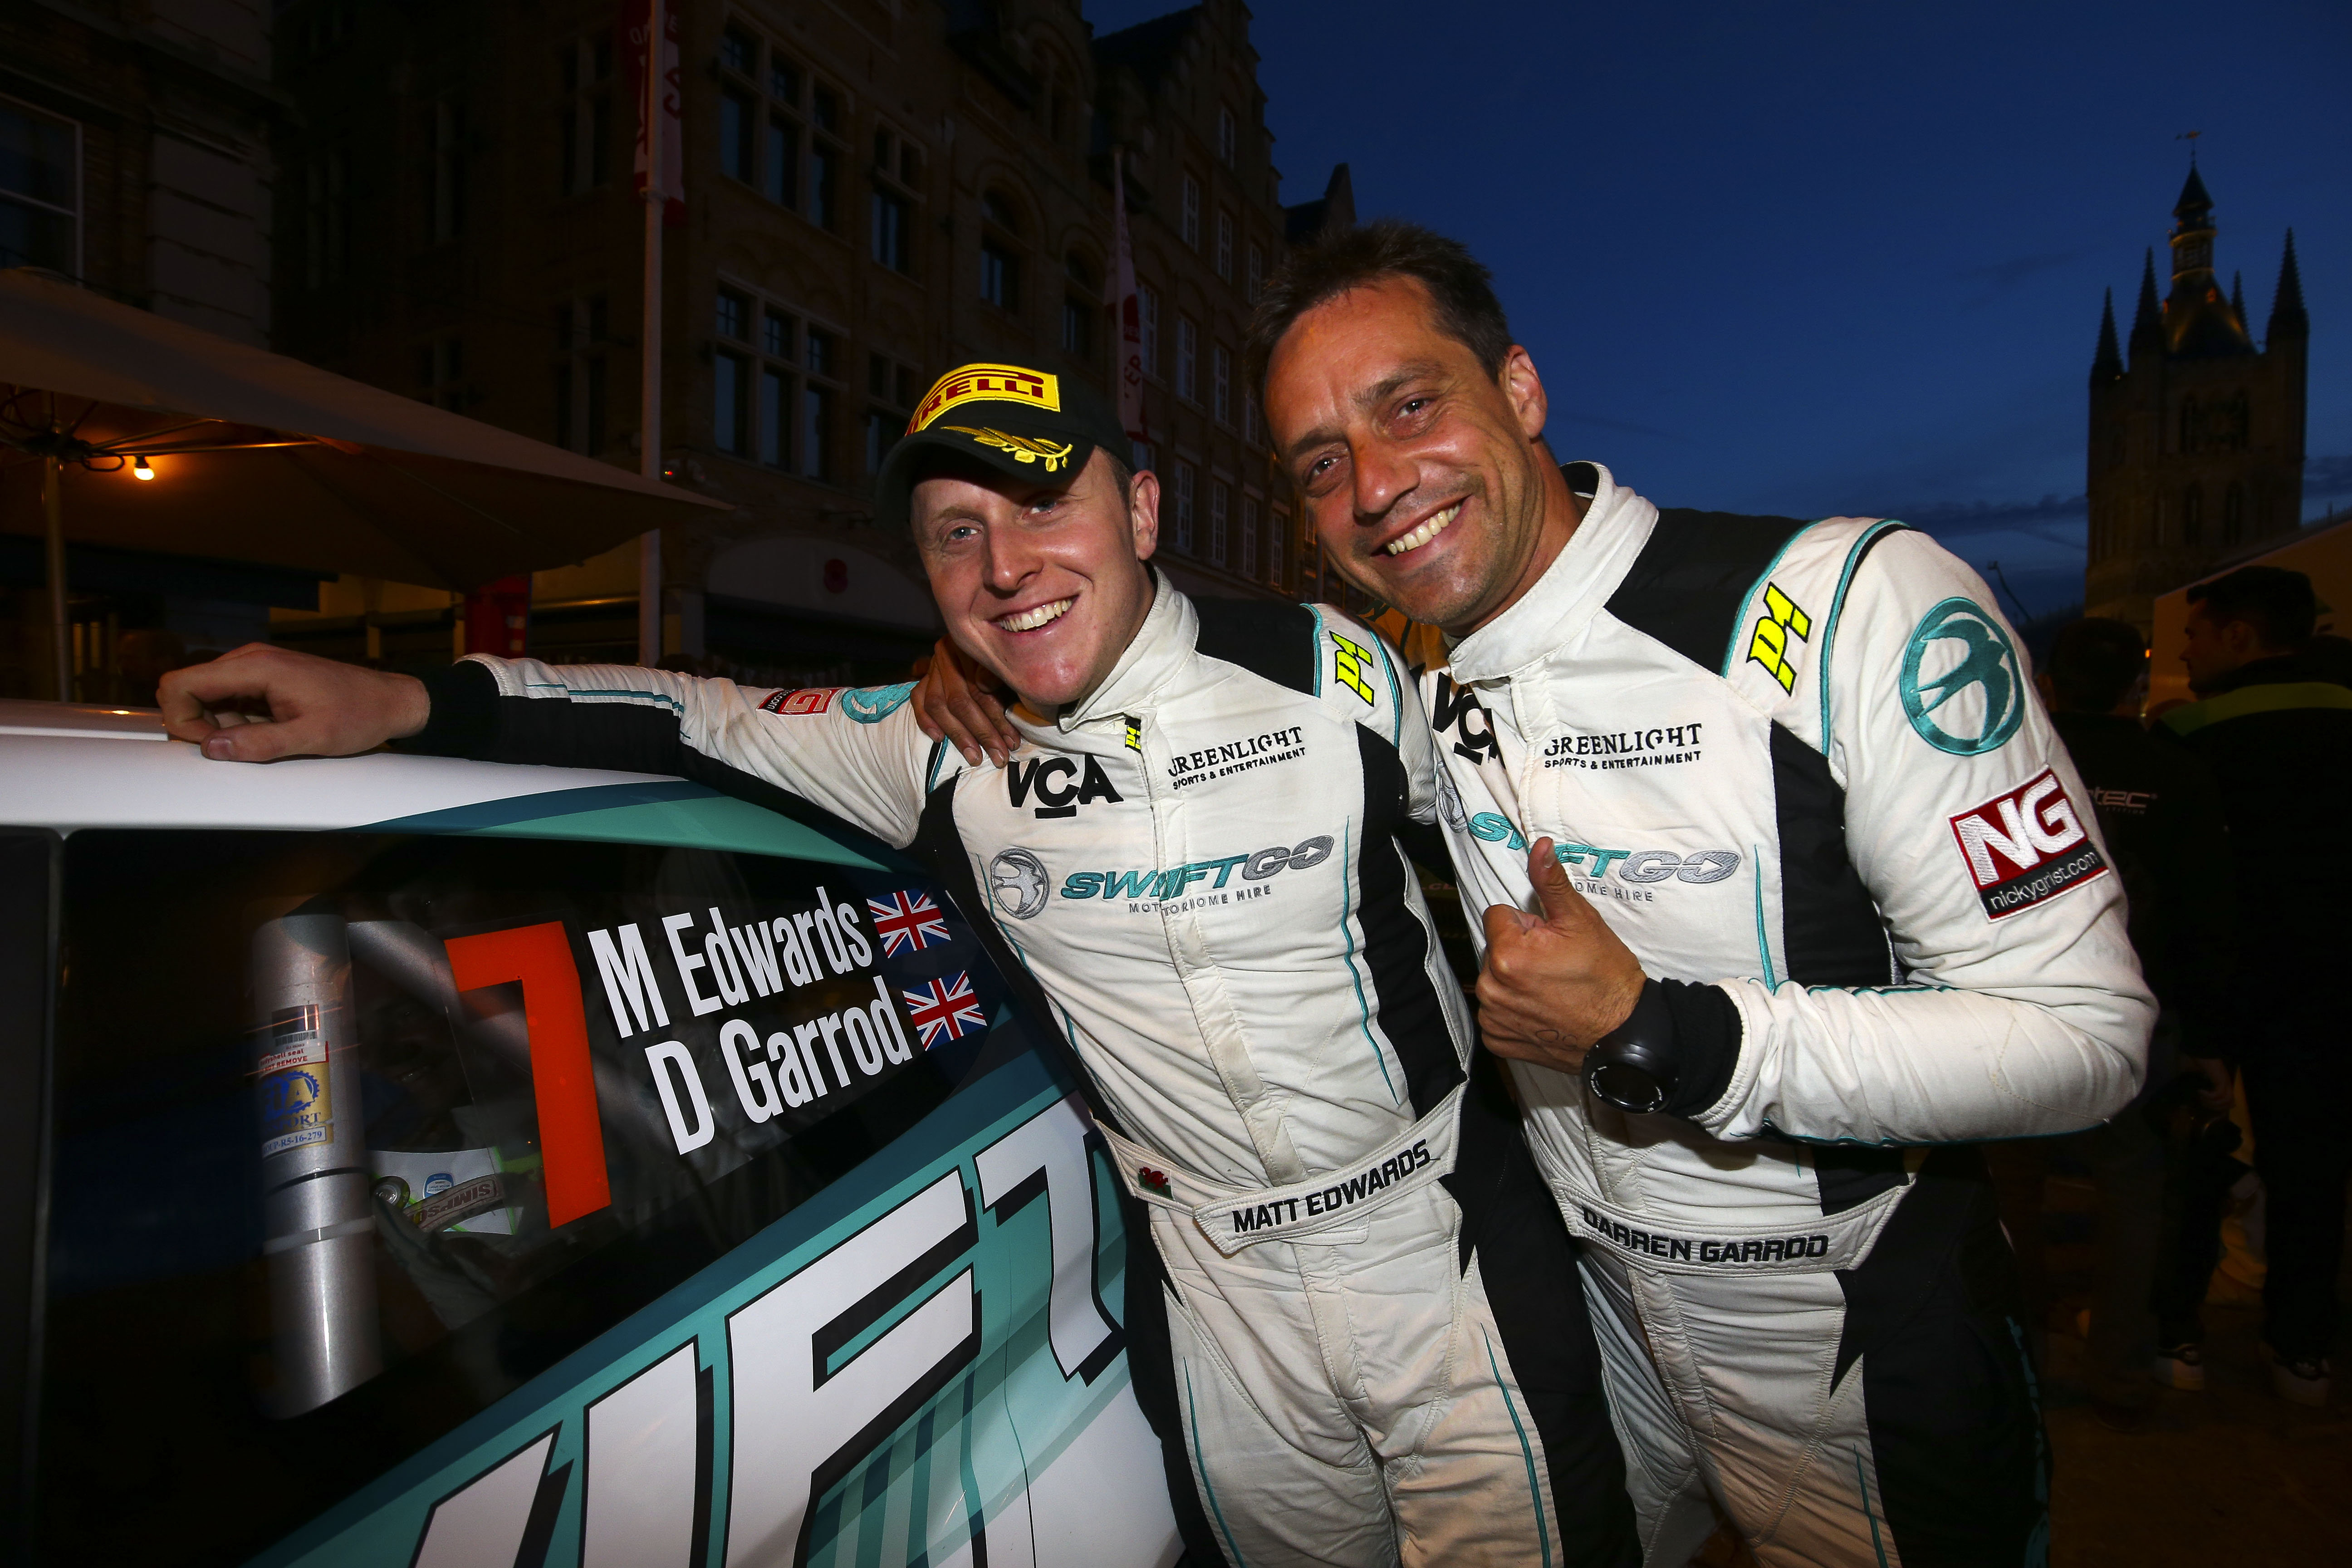 Edwards wins BRC round in Ypres